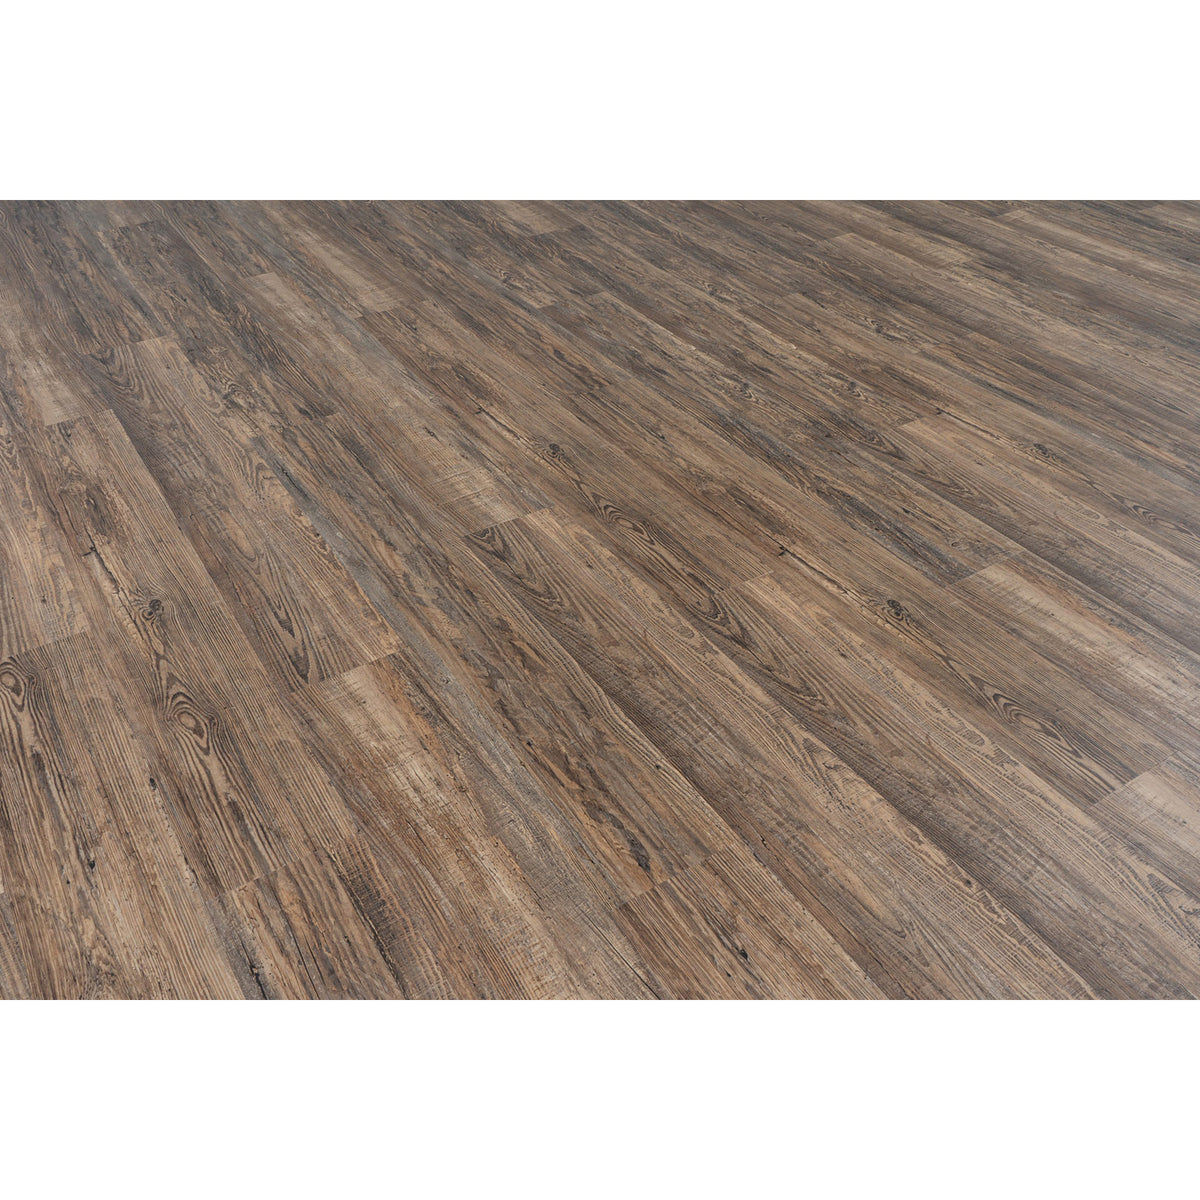 Provenza Floors - Uptown Chic Luxury Vinyl Plank - Retro Glow